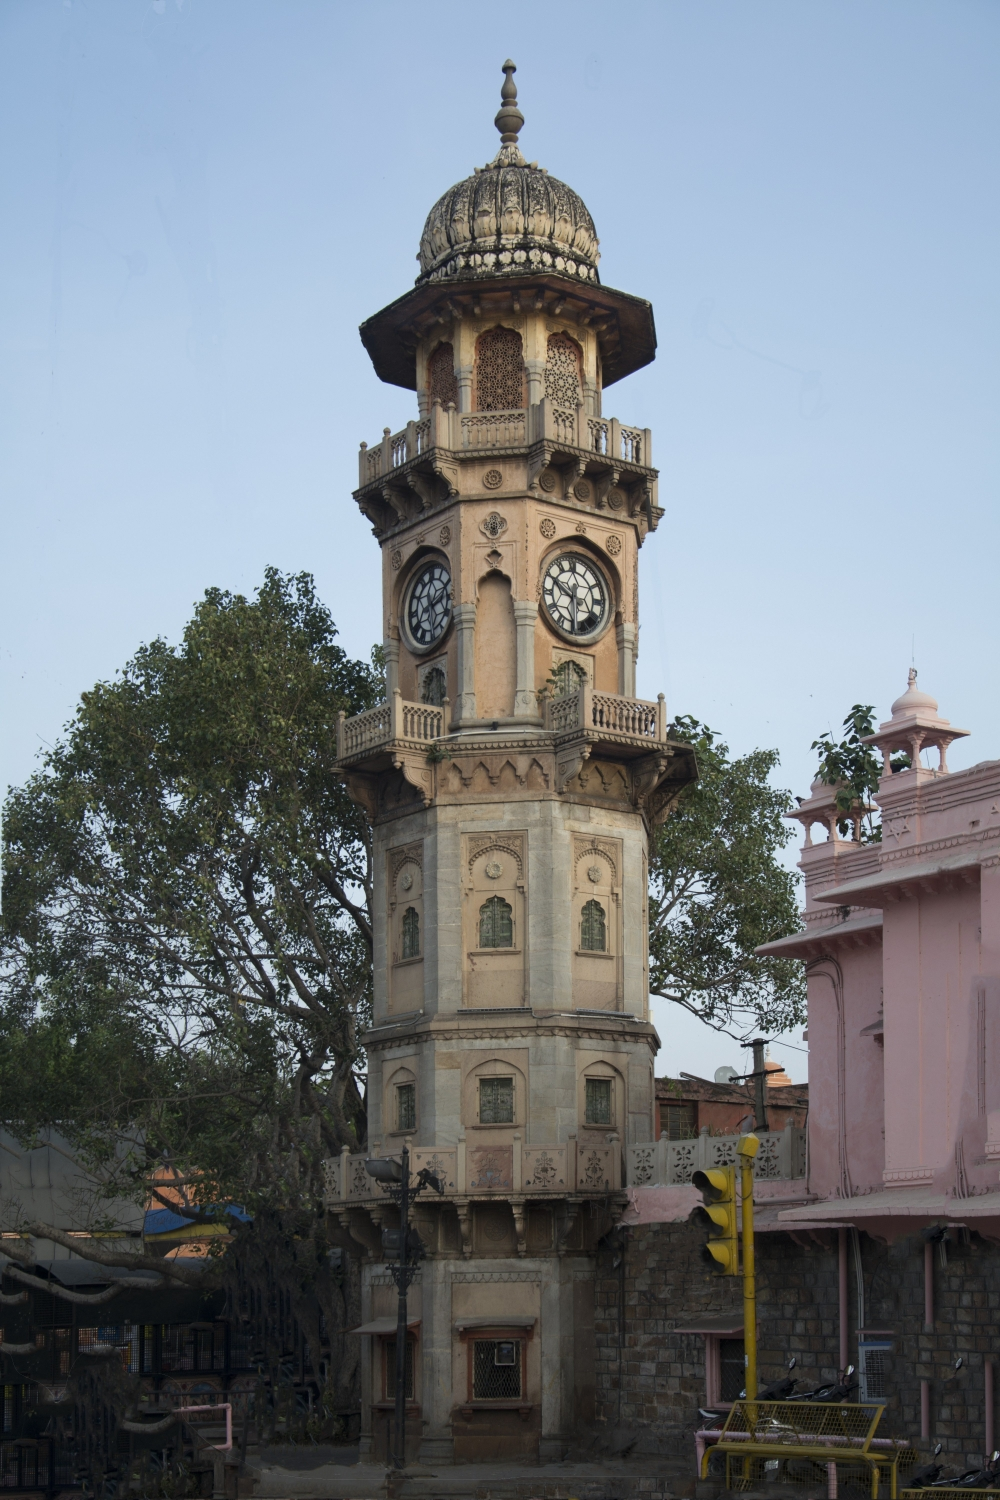 Fig. 6: The tall, thin minaret of theYaadgarghanta ghar houses a four-sided clock, pointing in the four cardinal directions, on its third floor